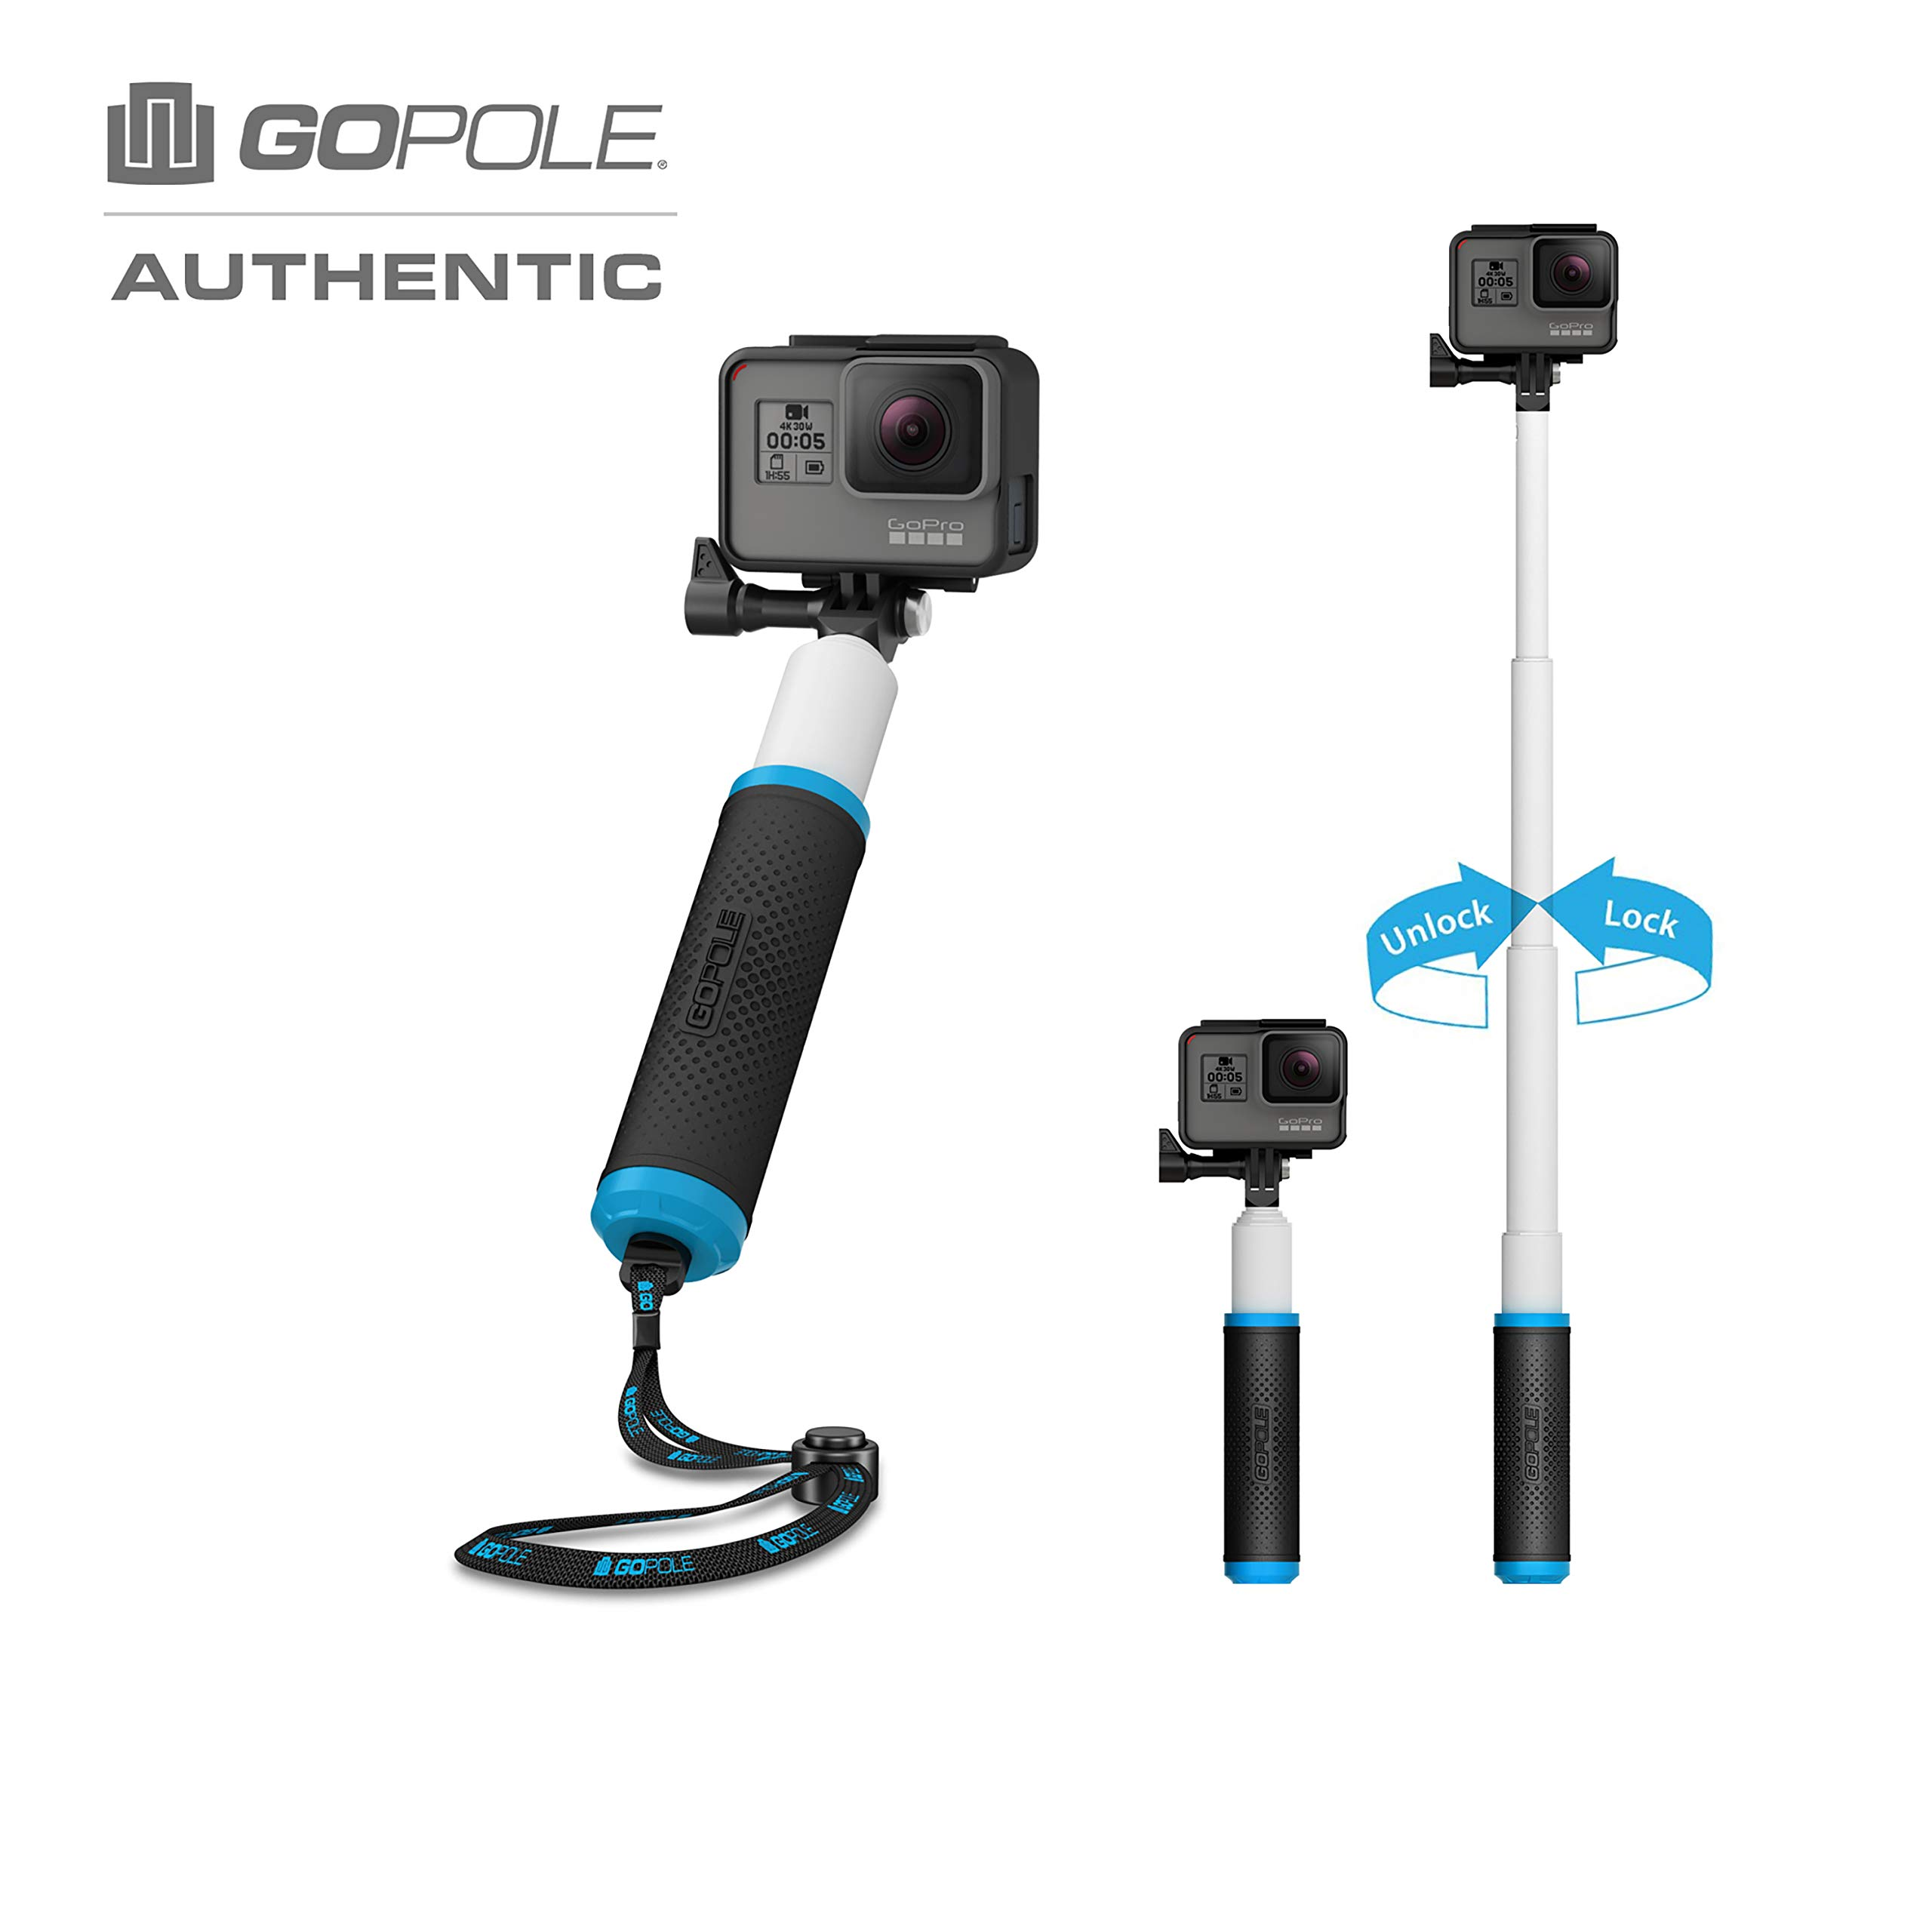 Reach Mini - 7-21'' Extension Pole for GoPro HERO7/6/5/4/3, GoPro Fusion, Osmo Action